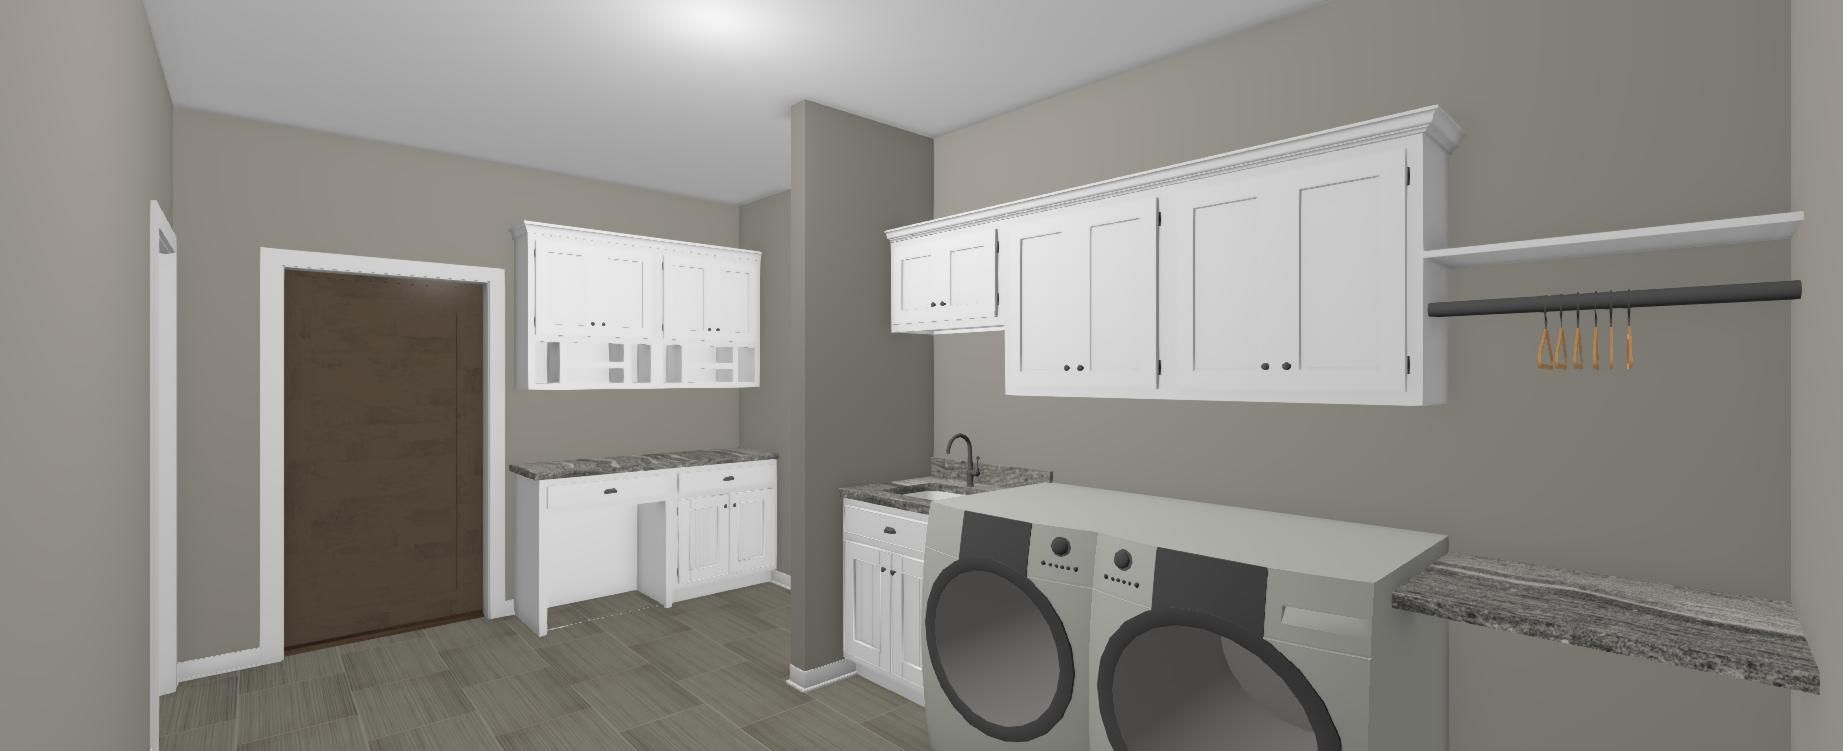 3 D Interior Of Laundry Room In Shouse House Design Home Decor Interior